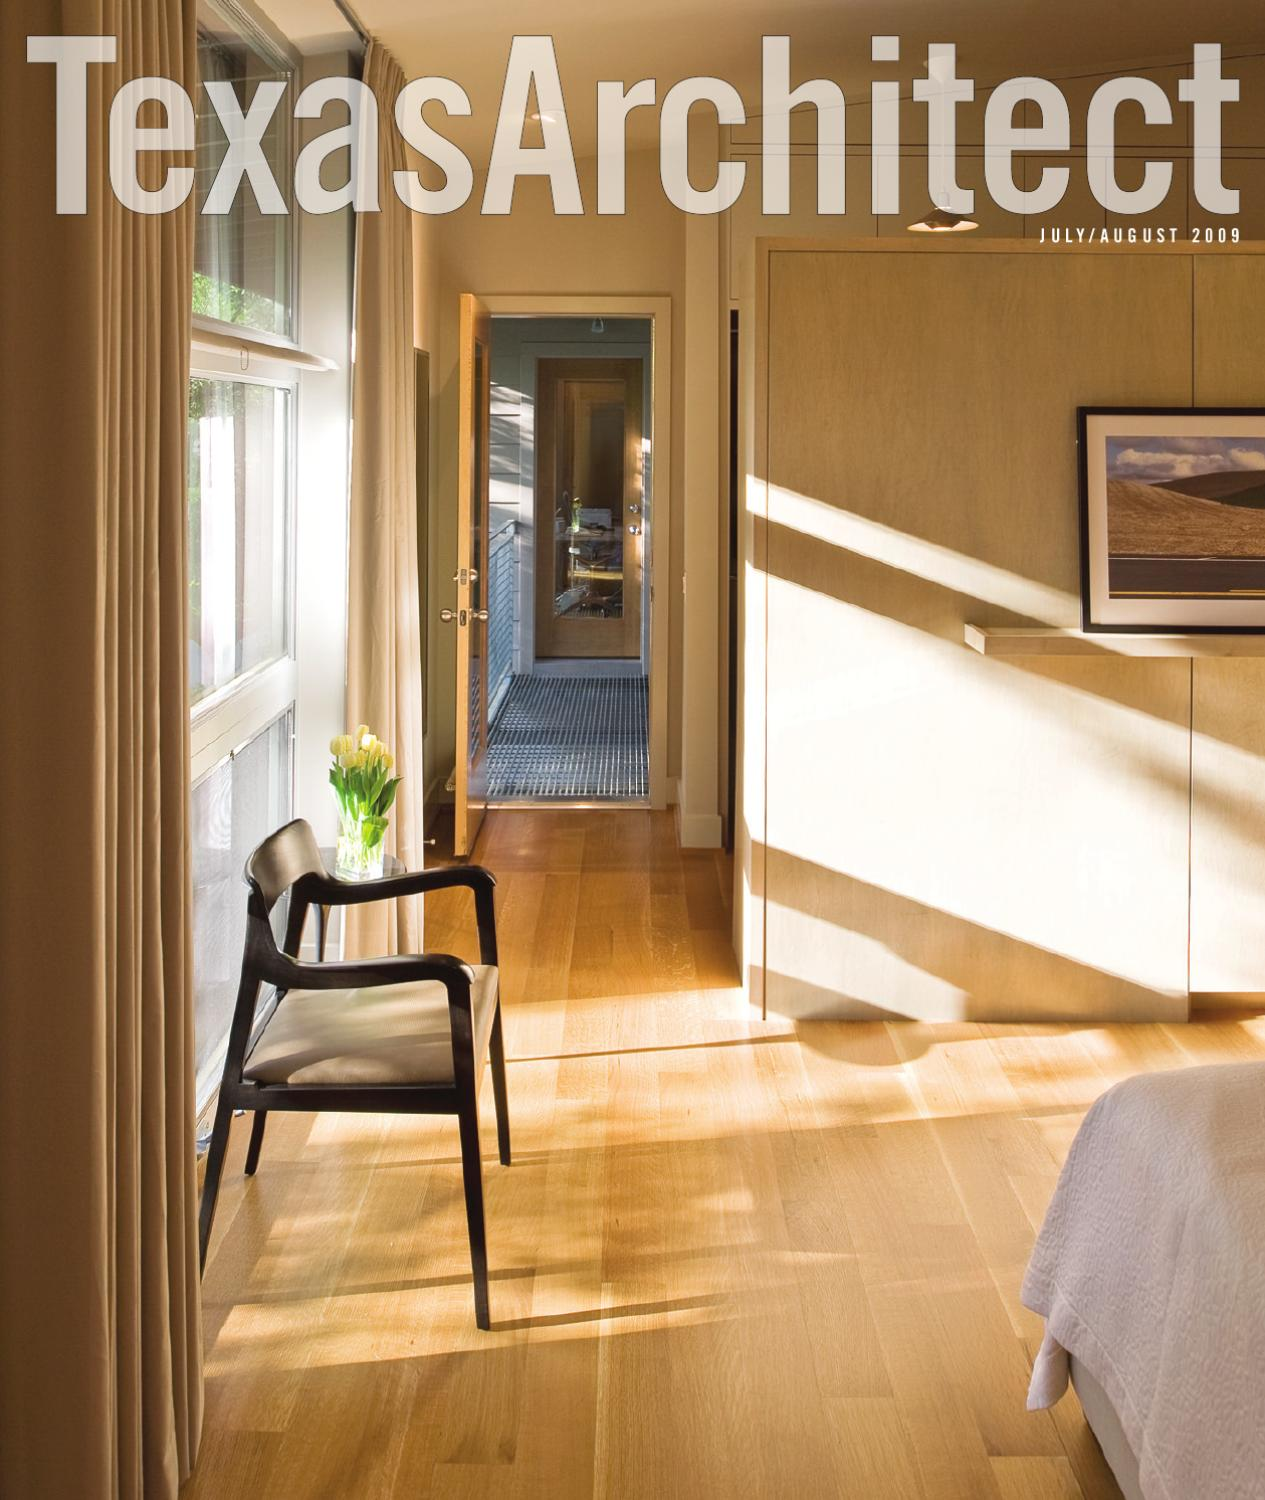 Texas architect july aug 2009 residential design by texas society of architects issuu